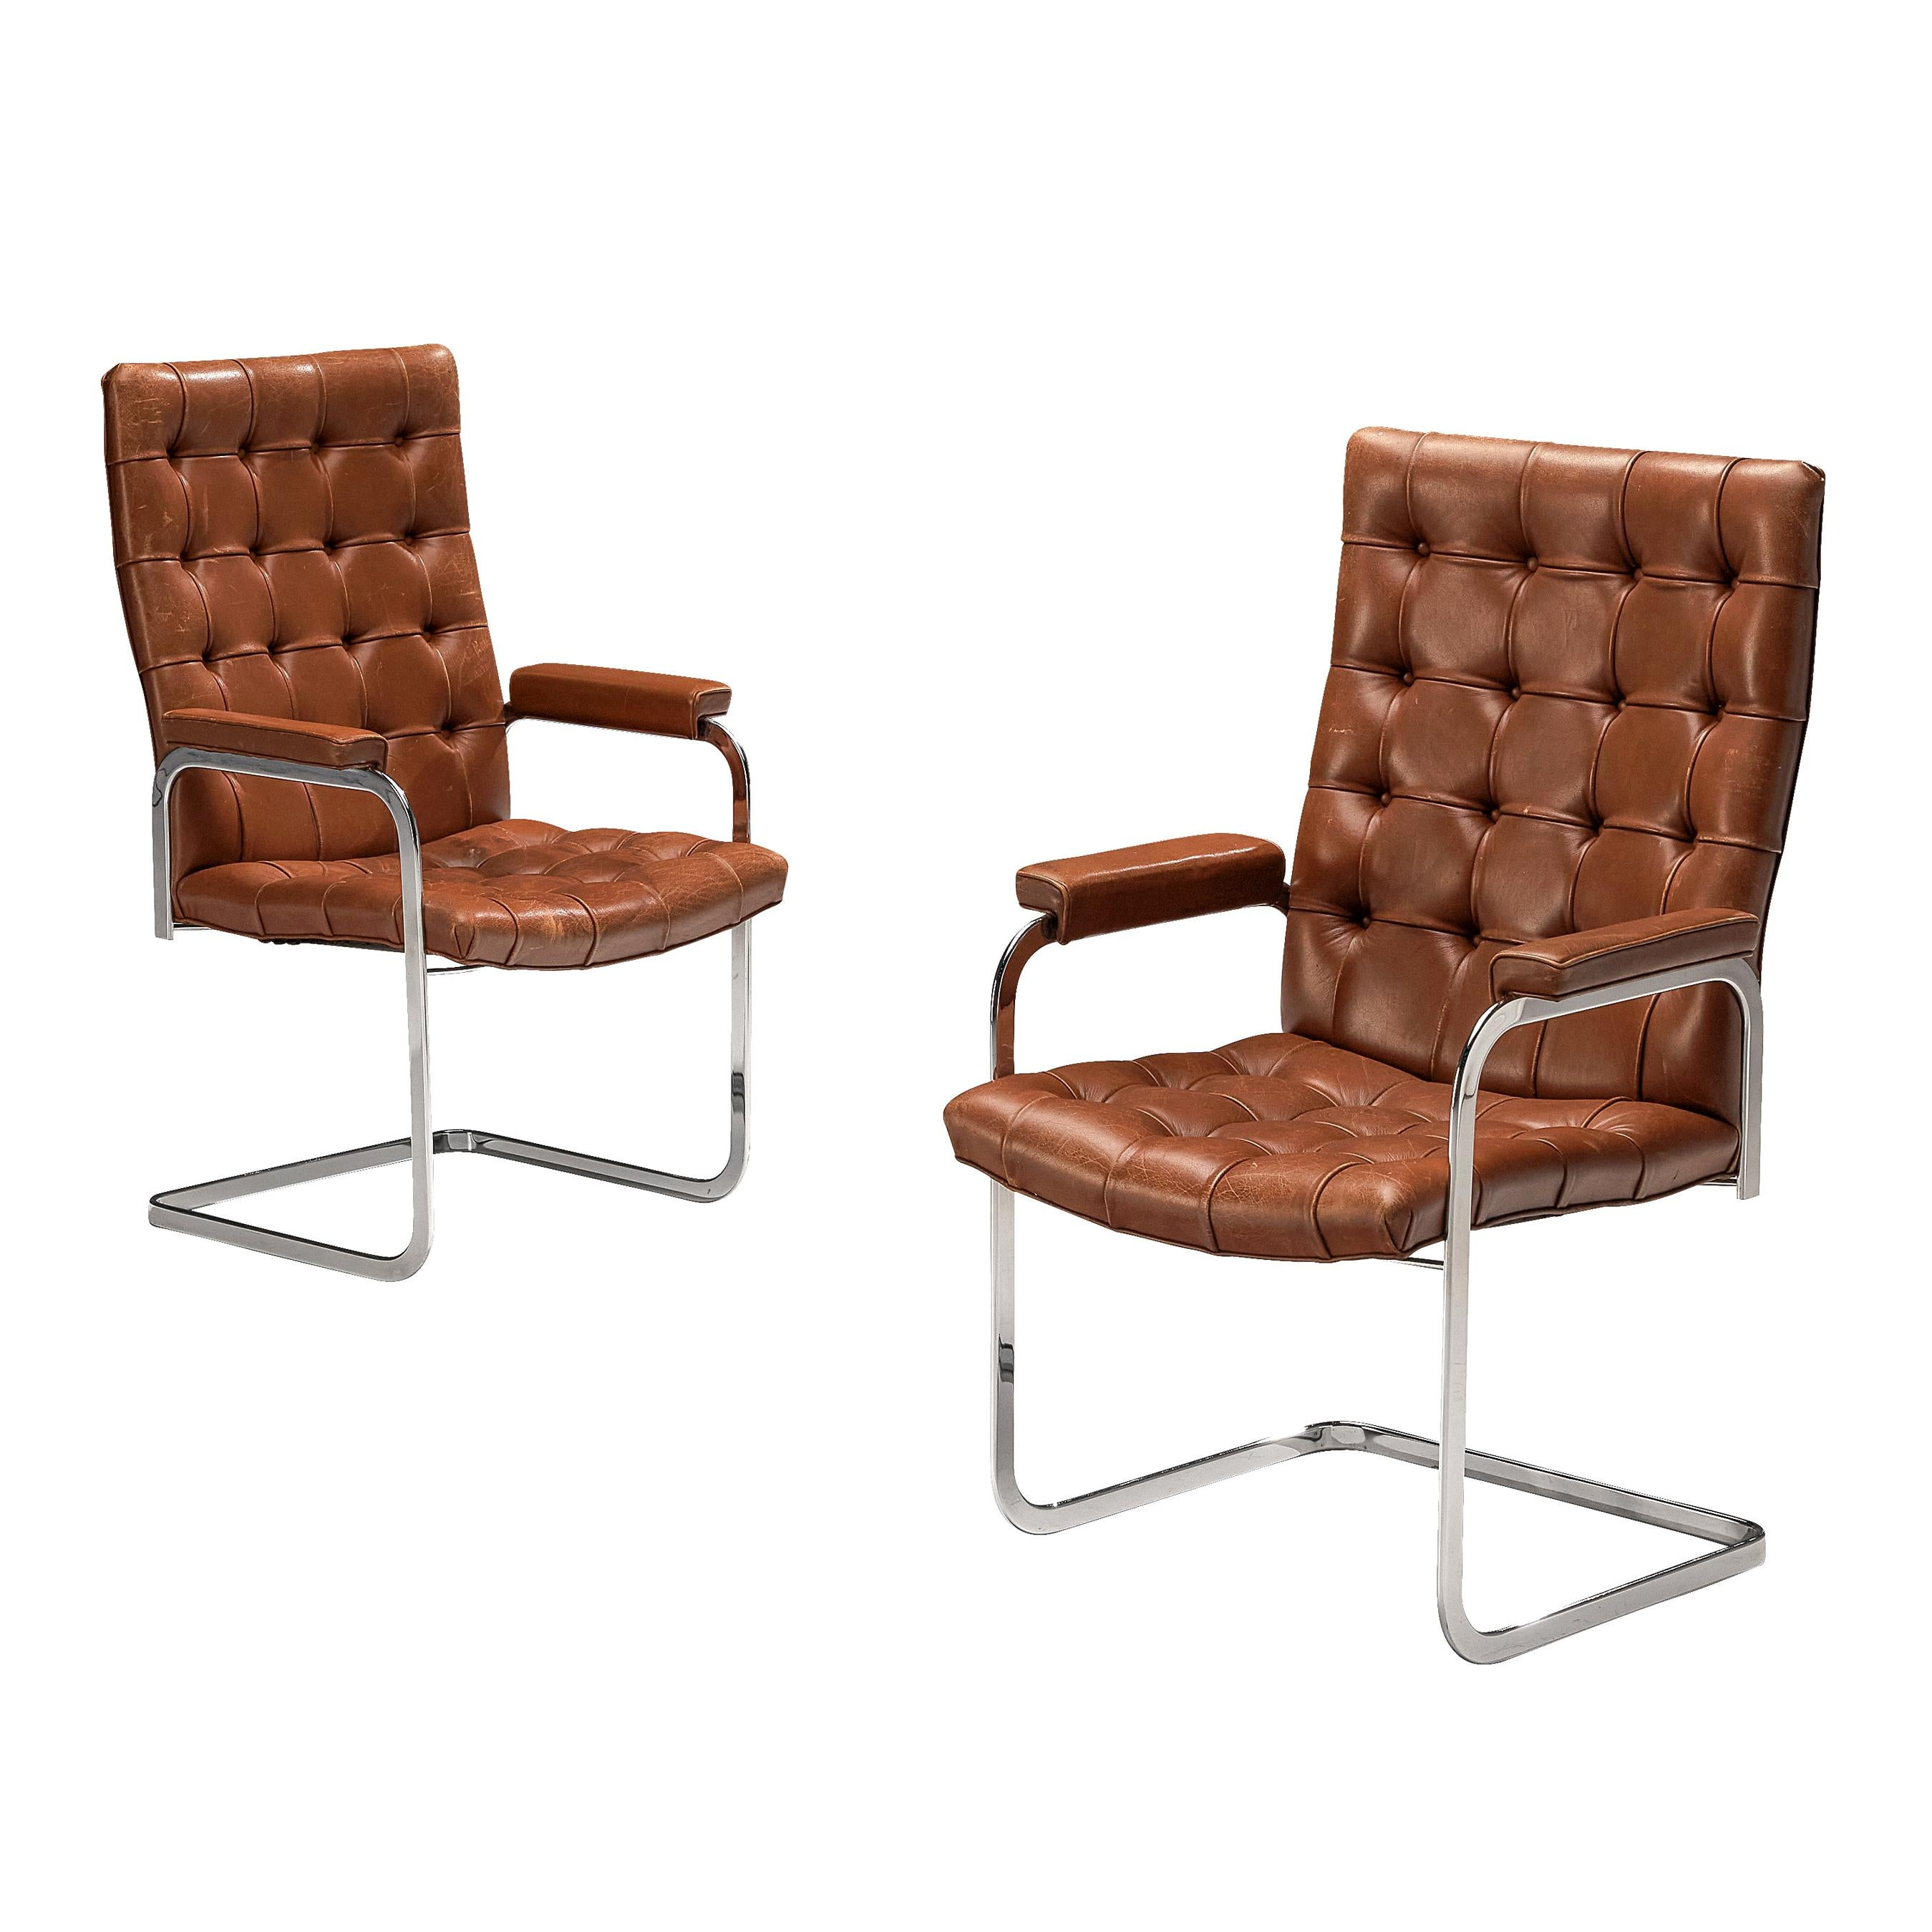 Robert Haussmann for De Sede Armchairs 'RH-304' in Brown Leather